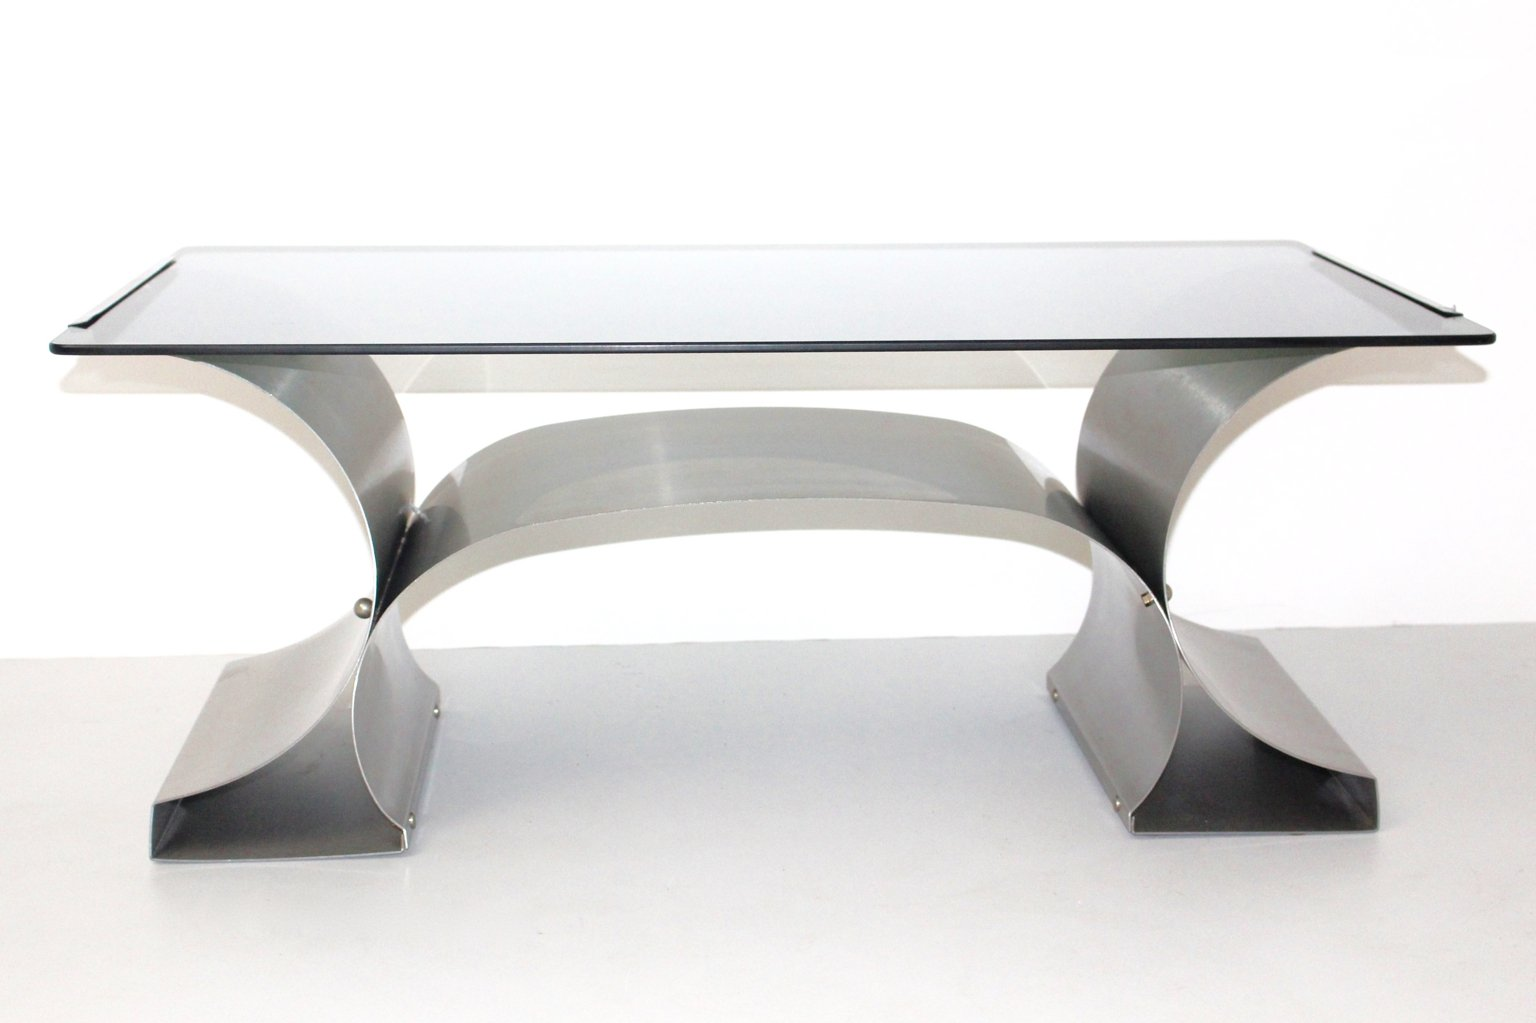 Stainless steel coffee table by francois monnet 1970s for sale at stainless steel coffee table by francois monnet 1970s geotapseo Images